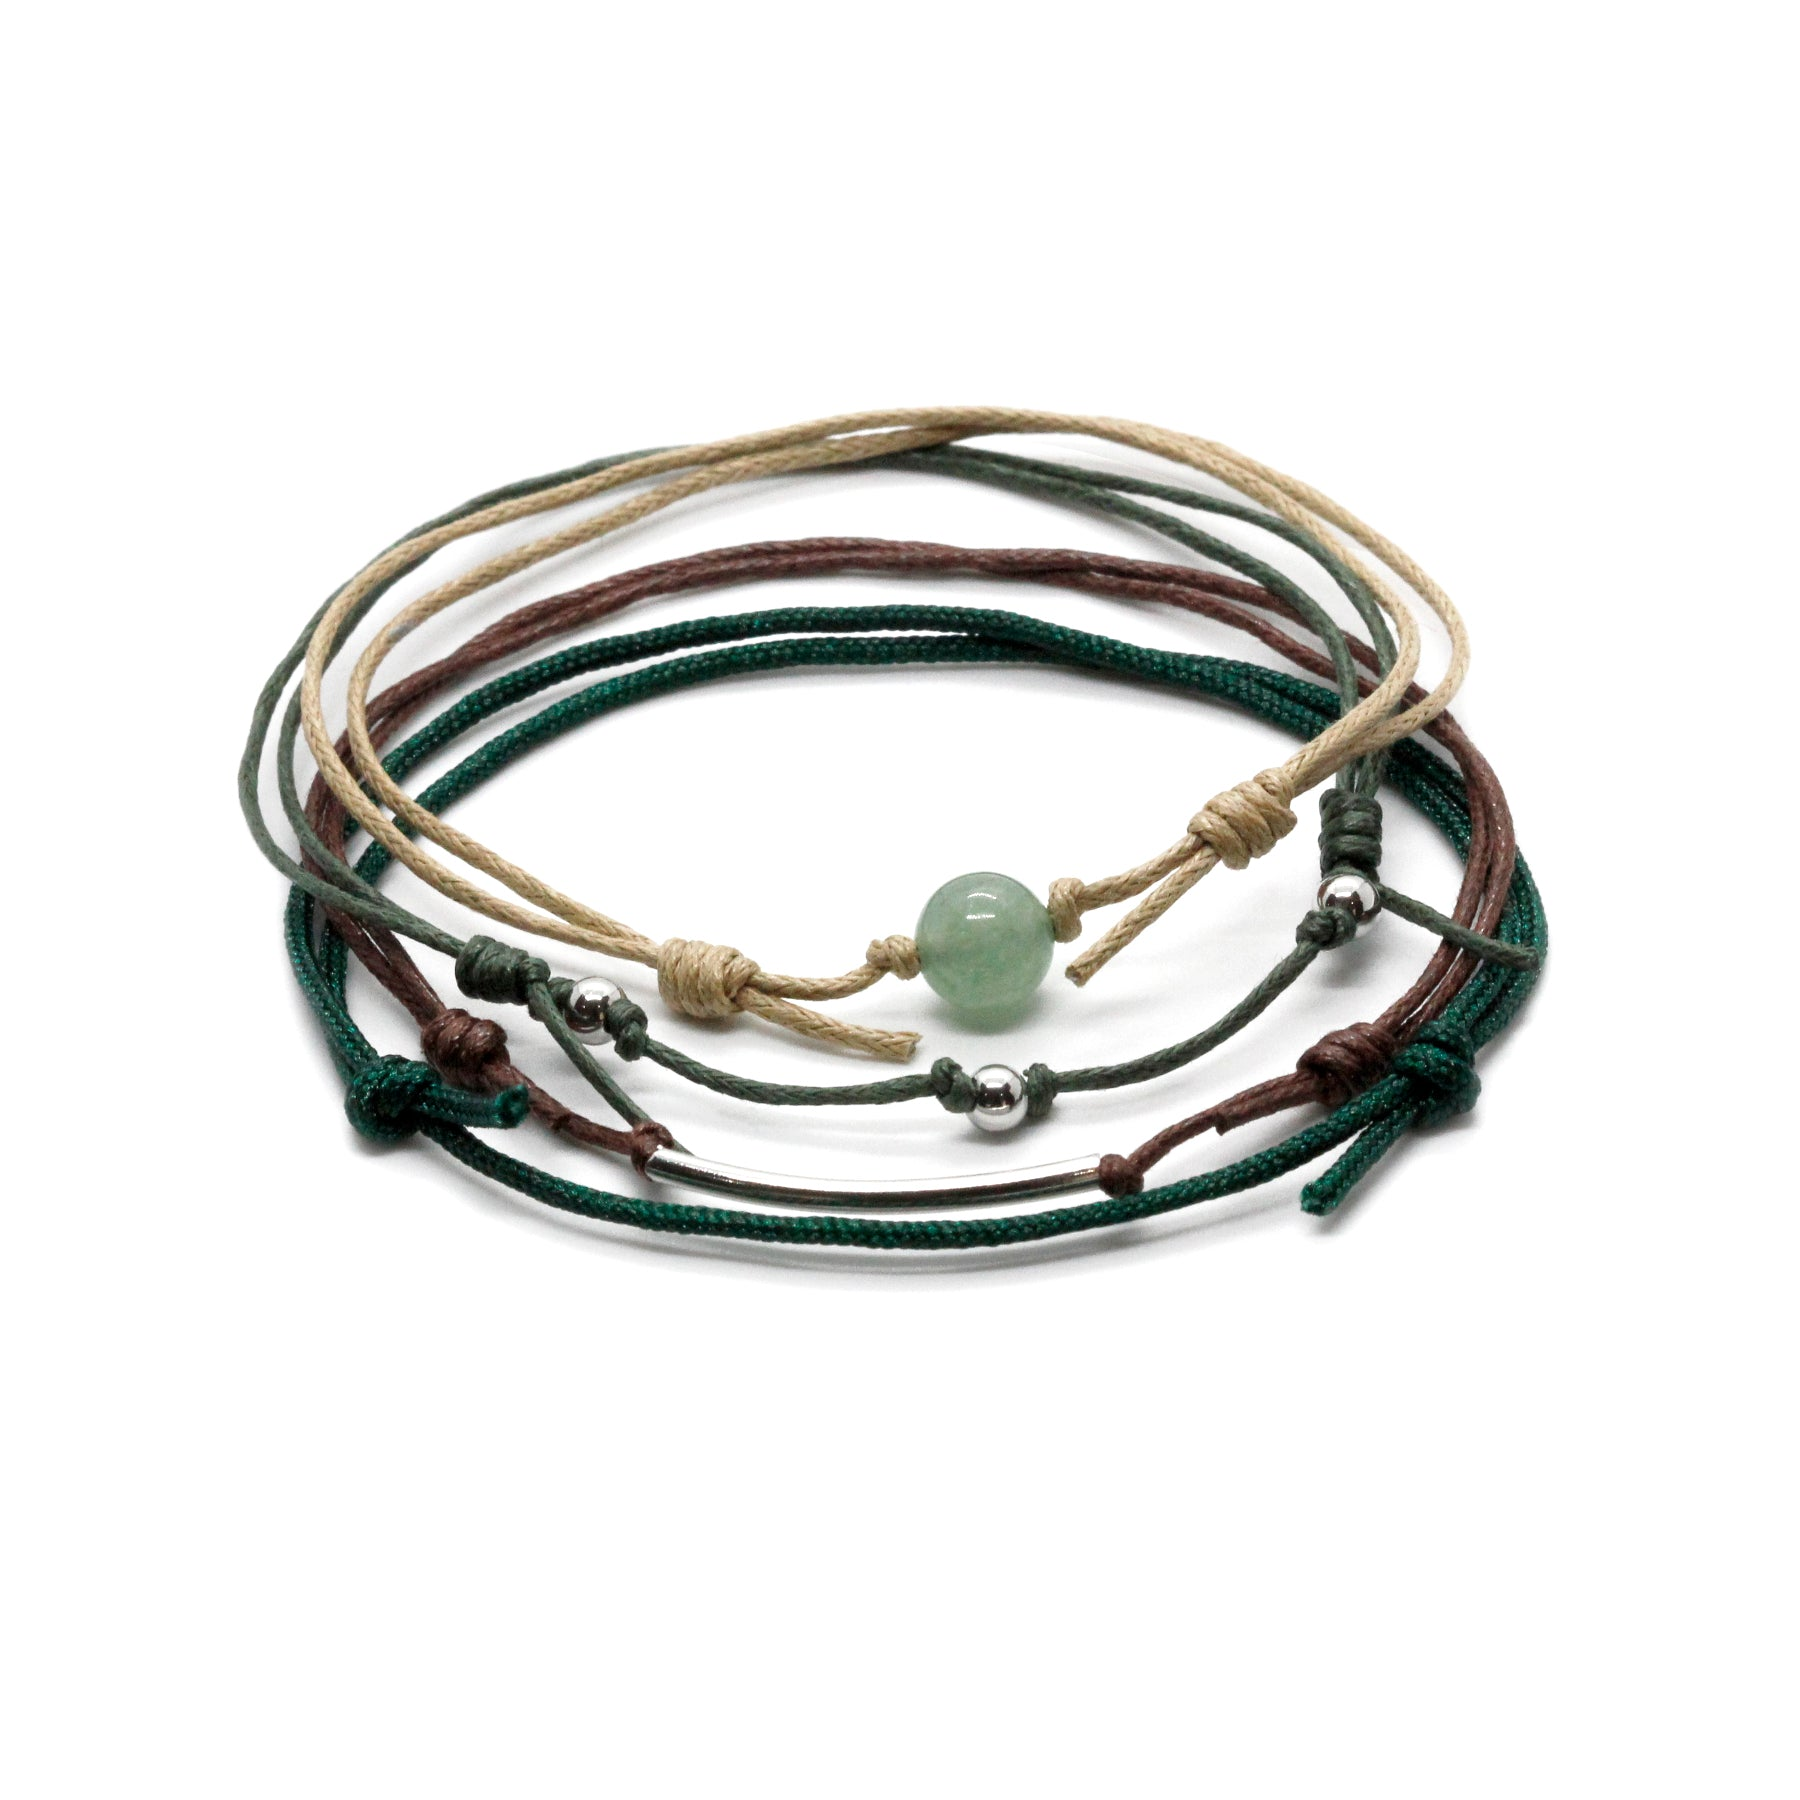 Aventurine Gemstone Anklet - 4 Piece Set - O Yeah Gifts!